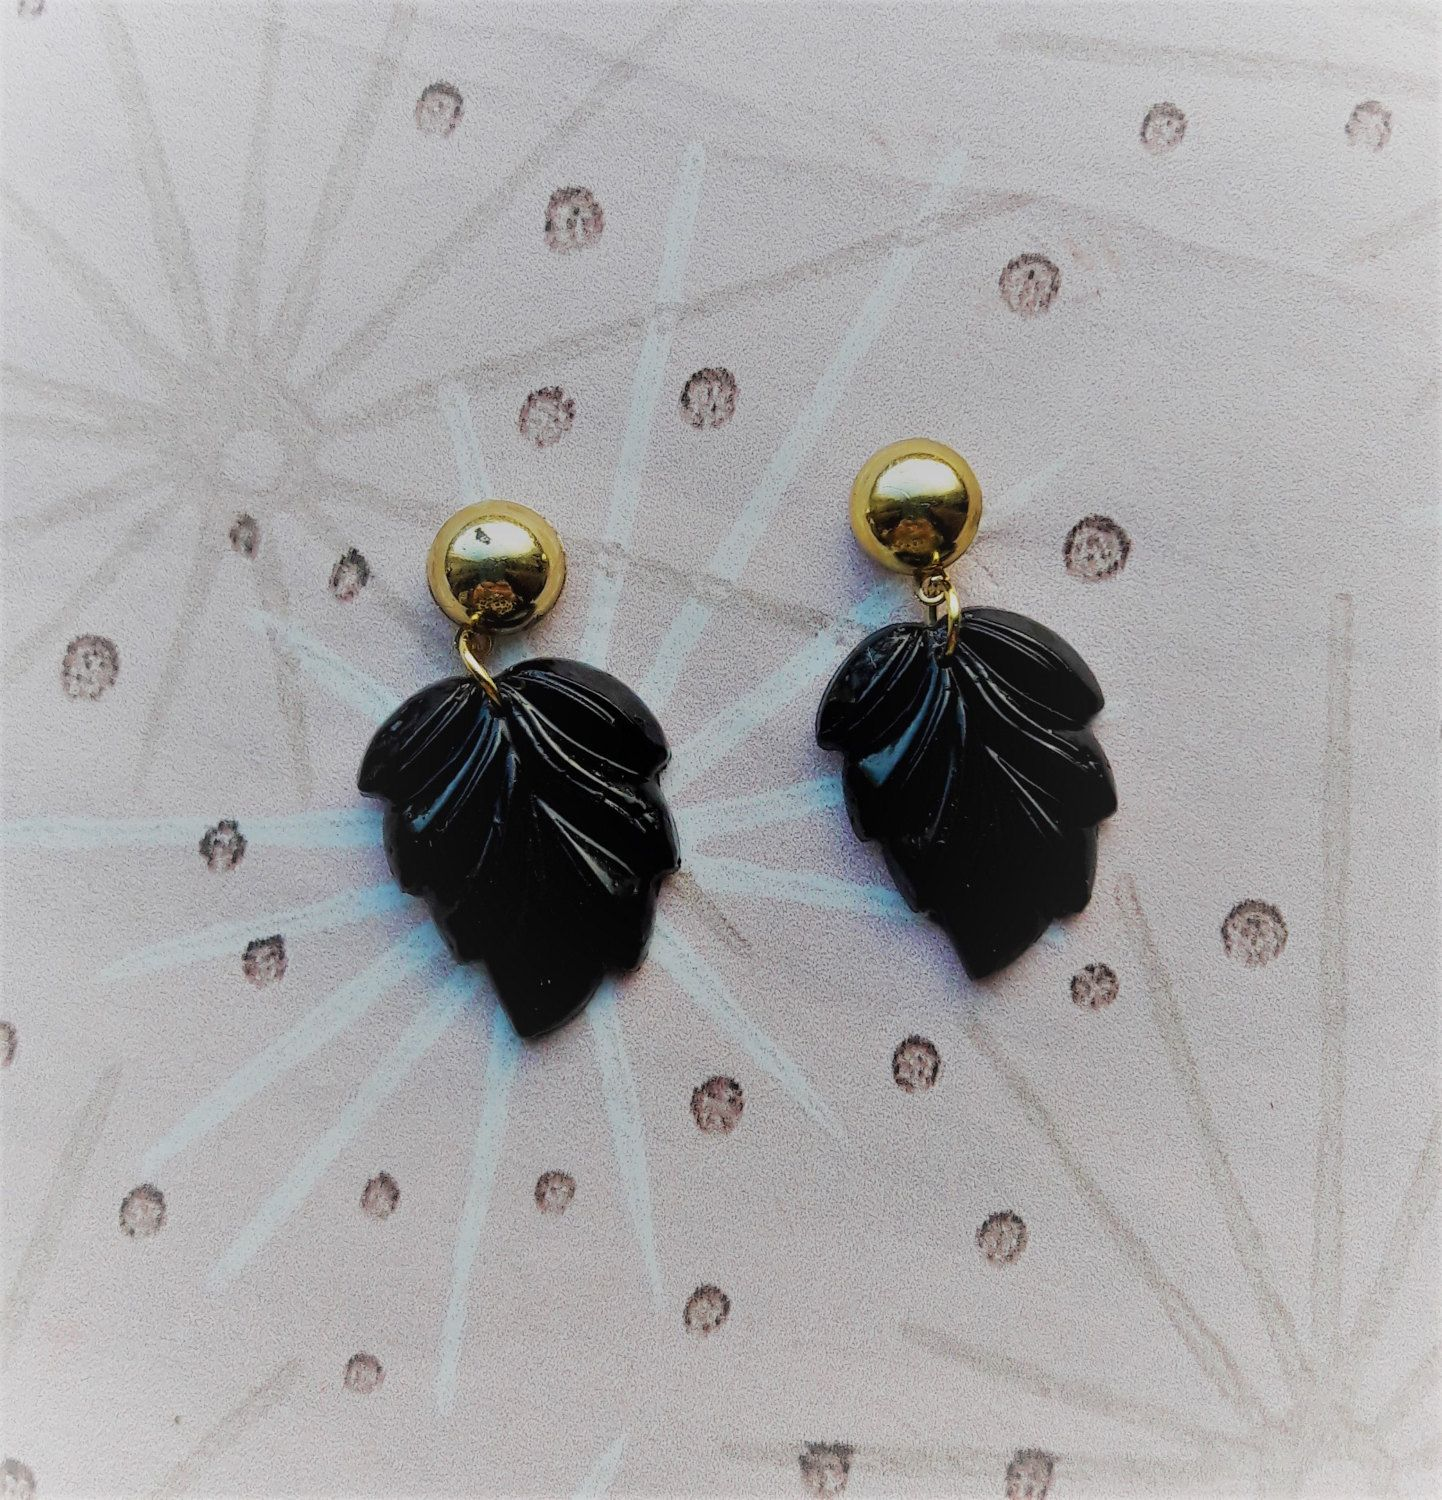 Glitter and sparkle with modern look. Modern resin earrings